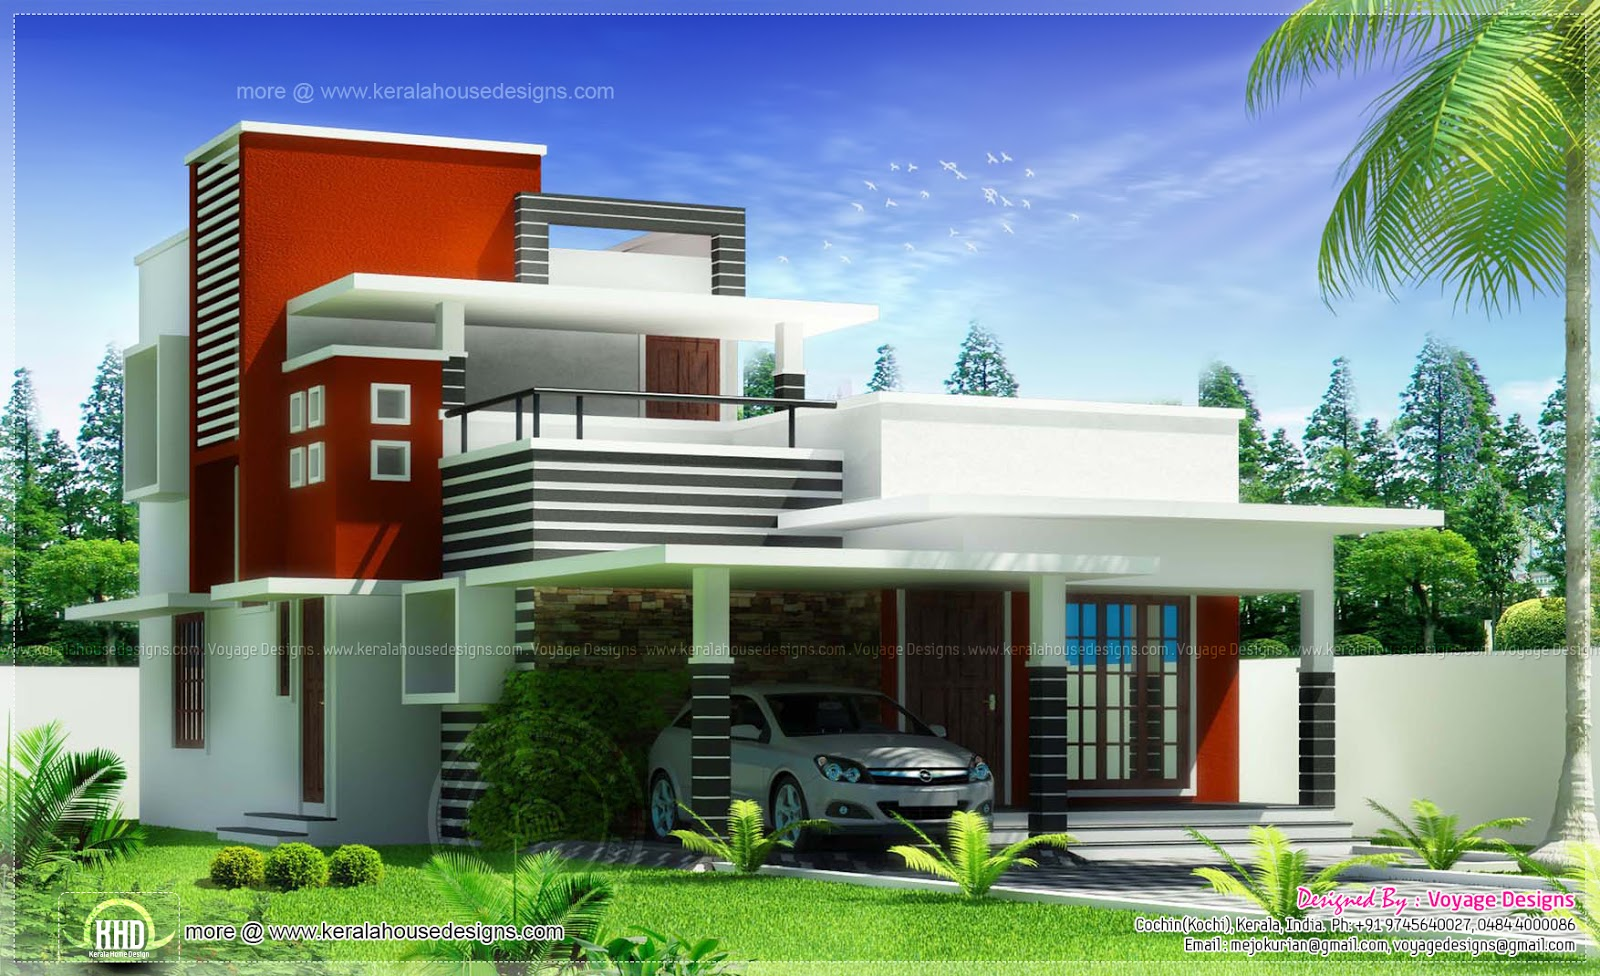 3 bed room contemporary style house home kerala plans for Home architecture design kerala